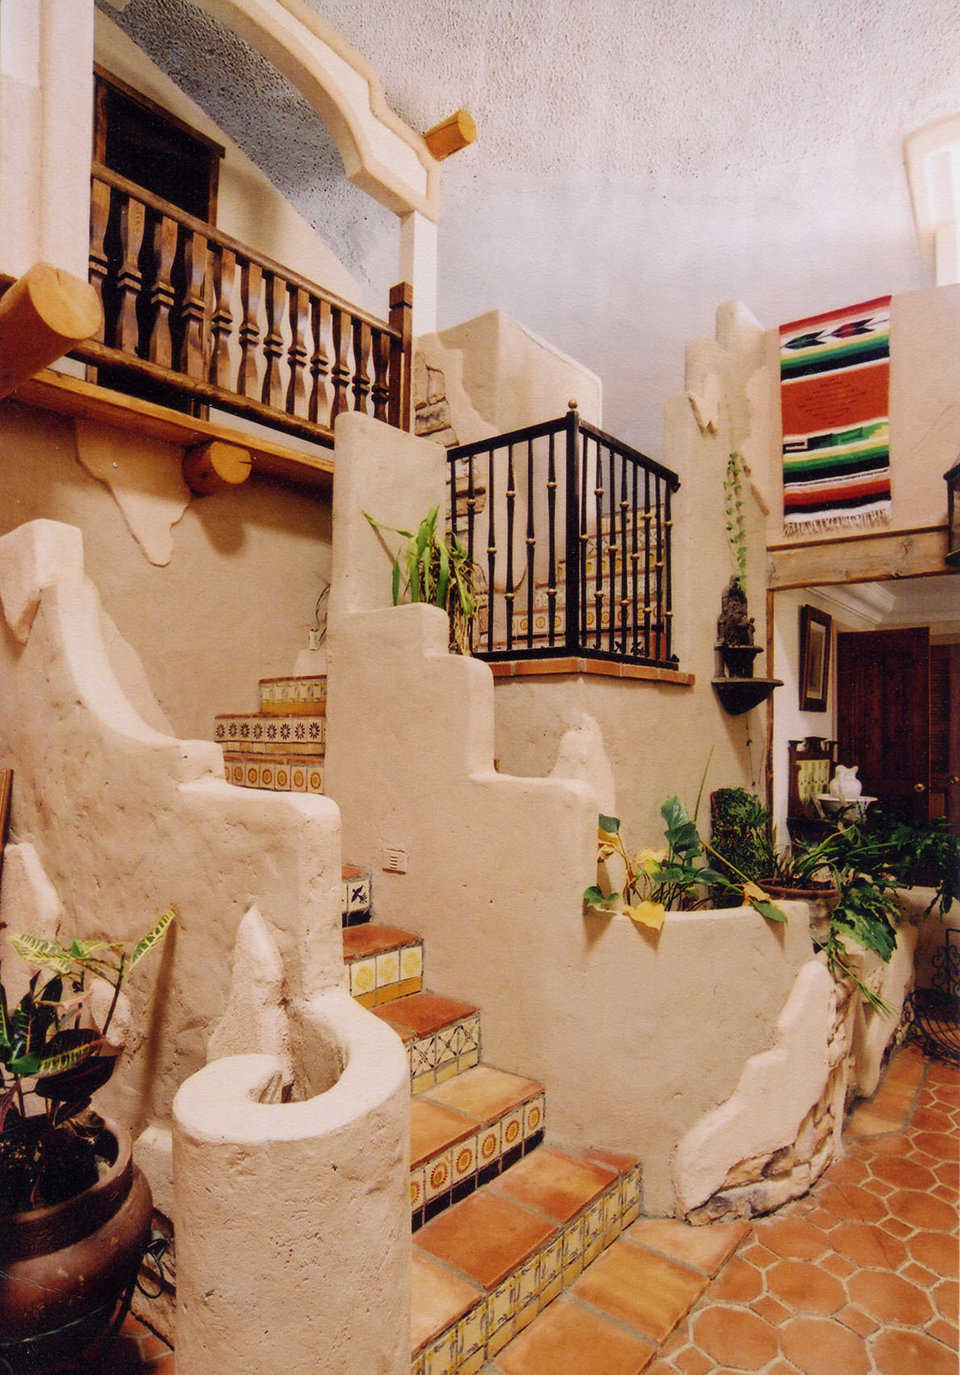 Stairway — Its Mosaic tiles lead to the upper level living areas.